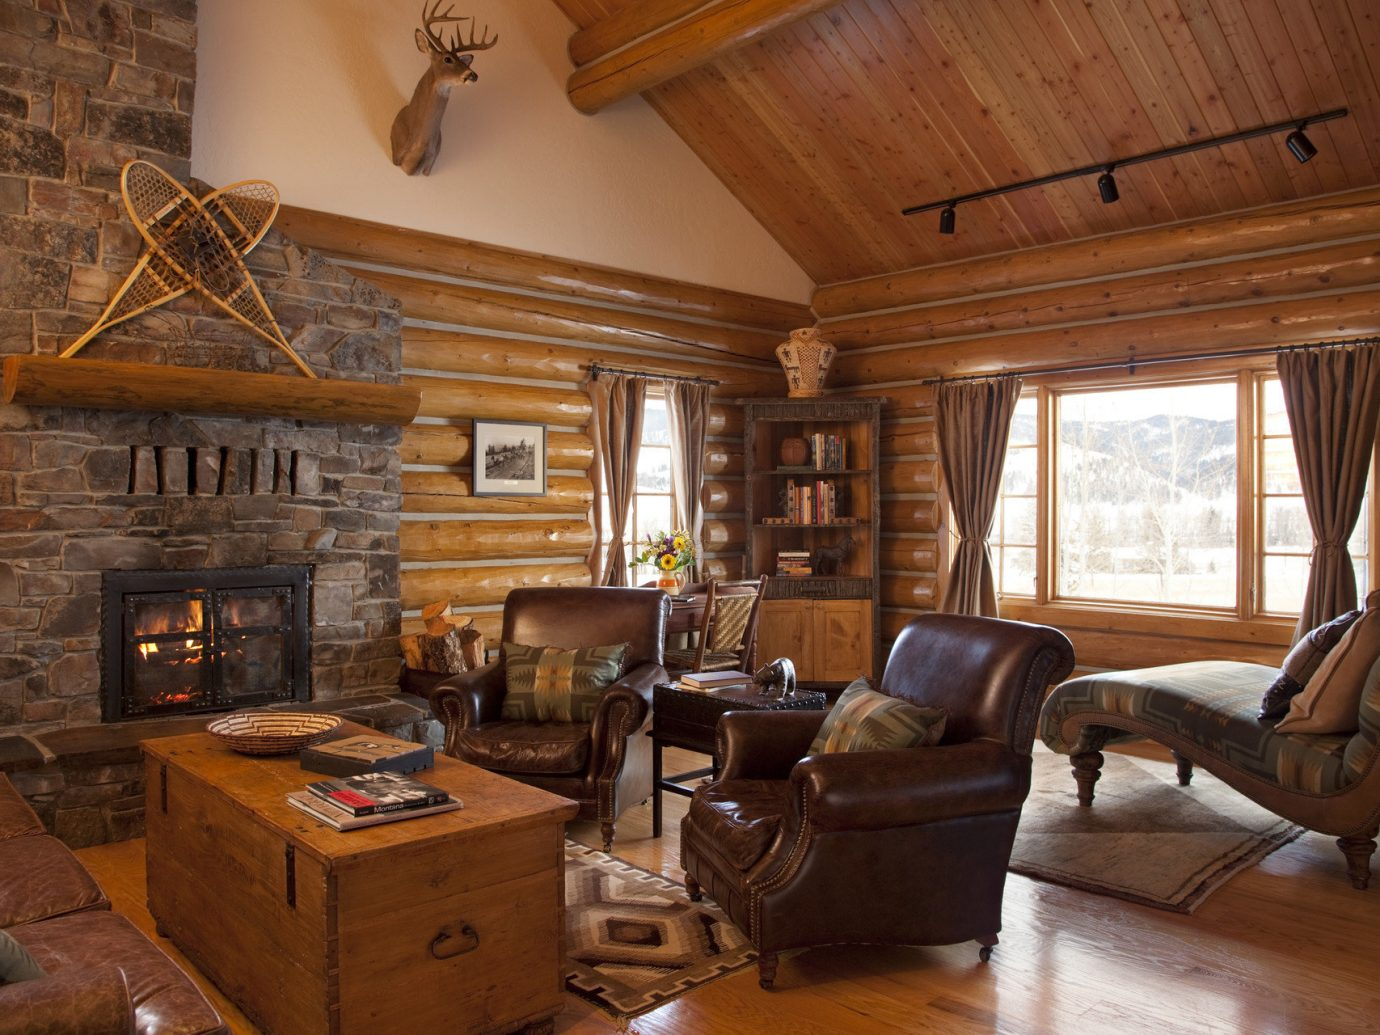 Glamping Hotels Montana Outdoors + Adventure Trip Ideas indoor Living room floor Fireplace property window living room estate home fire log cabin house furniture cottage hardwood ceiling wood farmhouse interior design real estate wood flooring stone